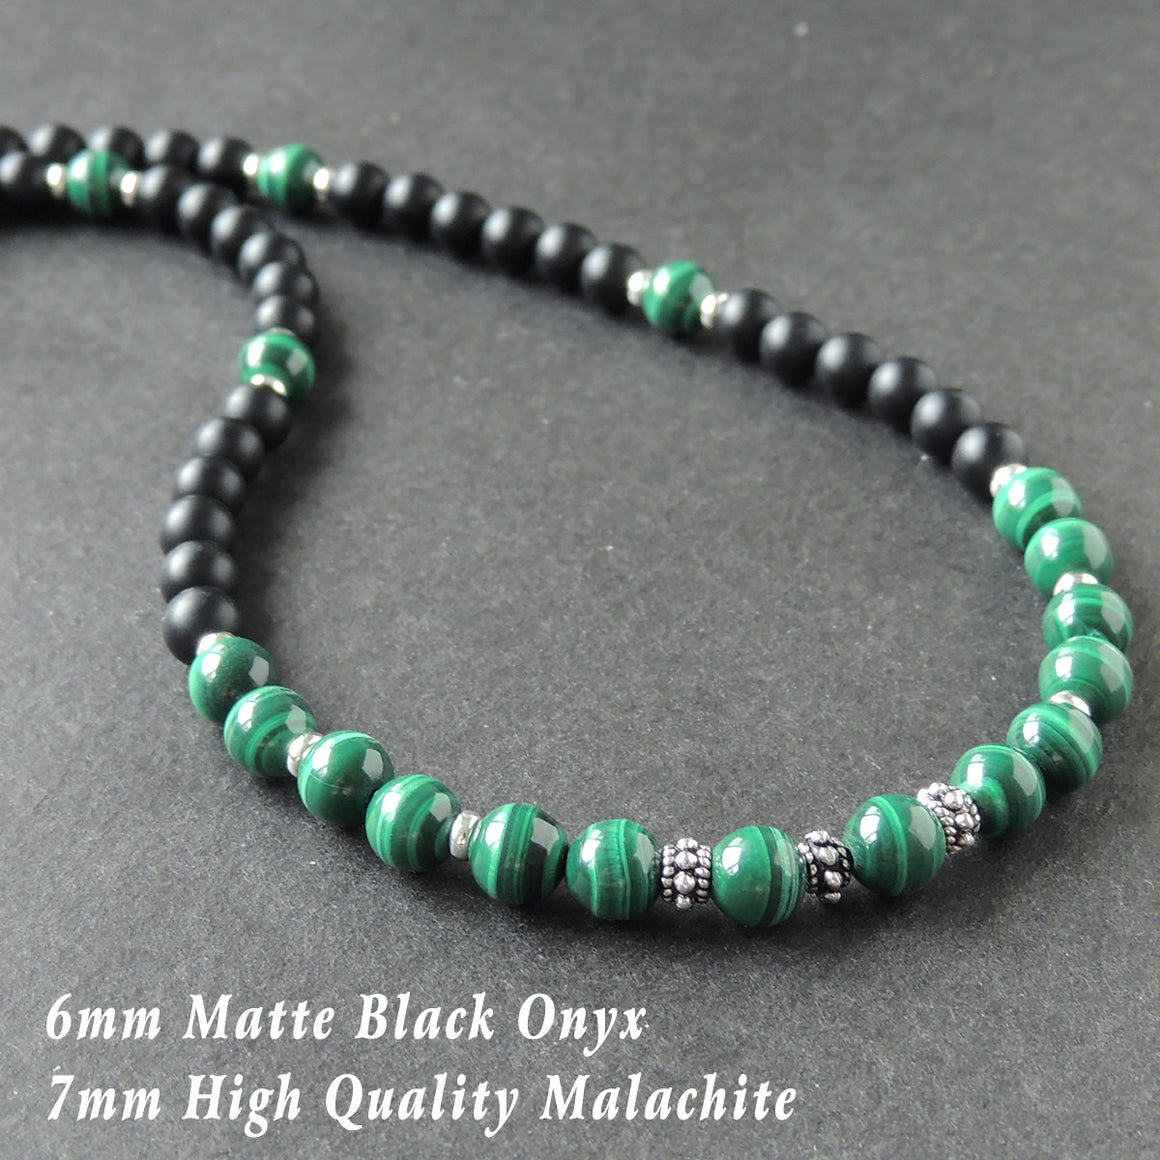 Malachite & Matte Black Onyx Healing Gemstone Necklace with S925 Sterling Silver Spacer Beads & S-hook Clasp - Handmade by Gem & Silver NK084